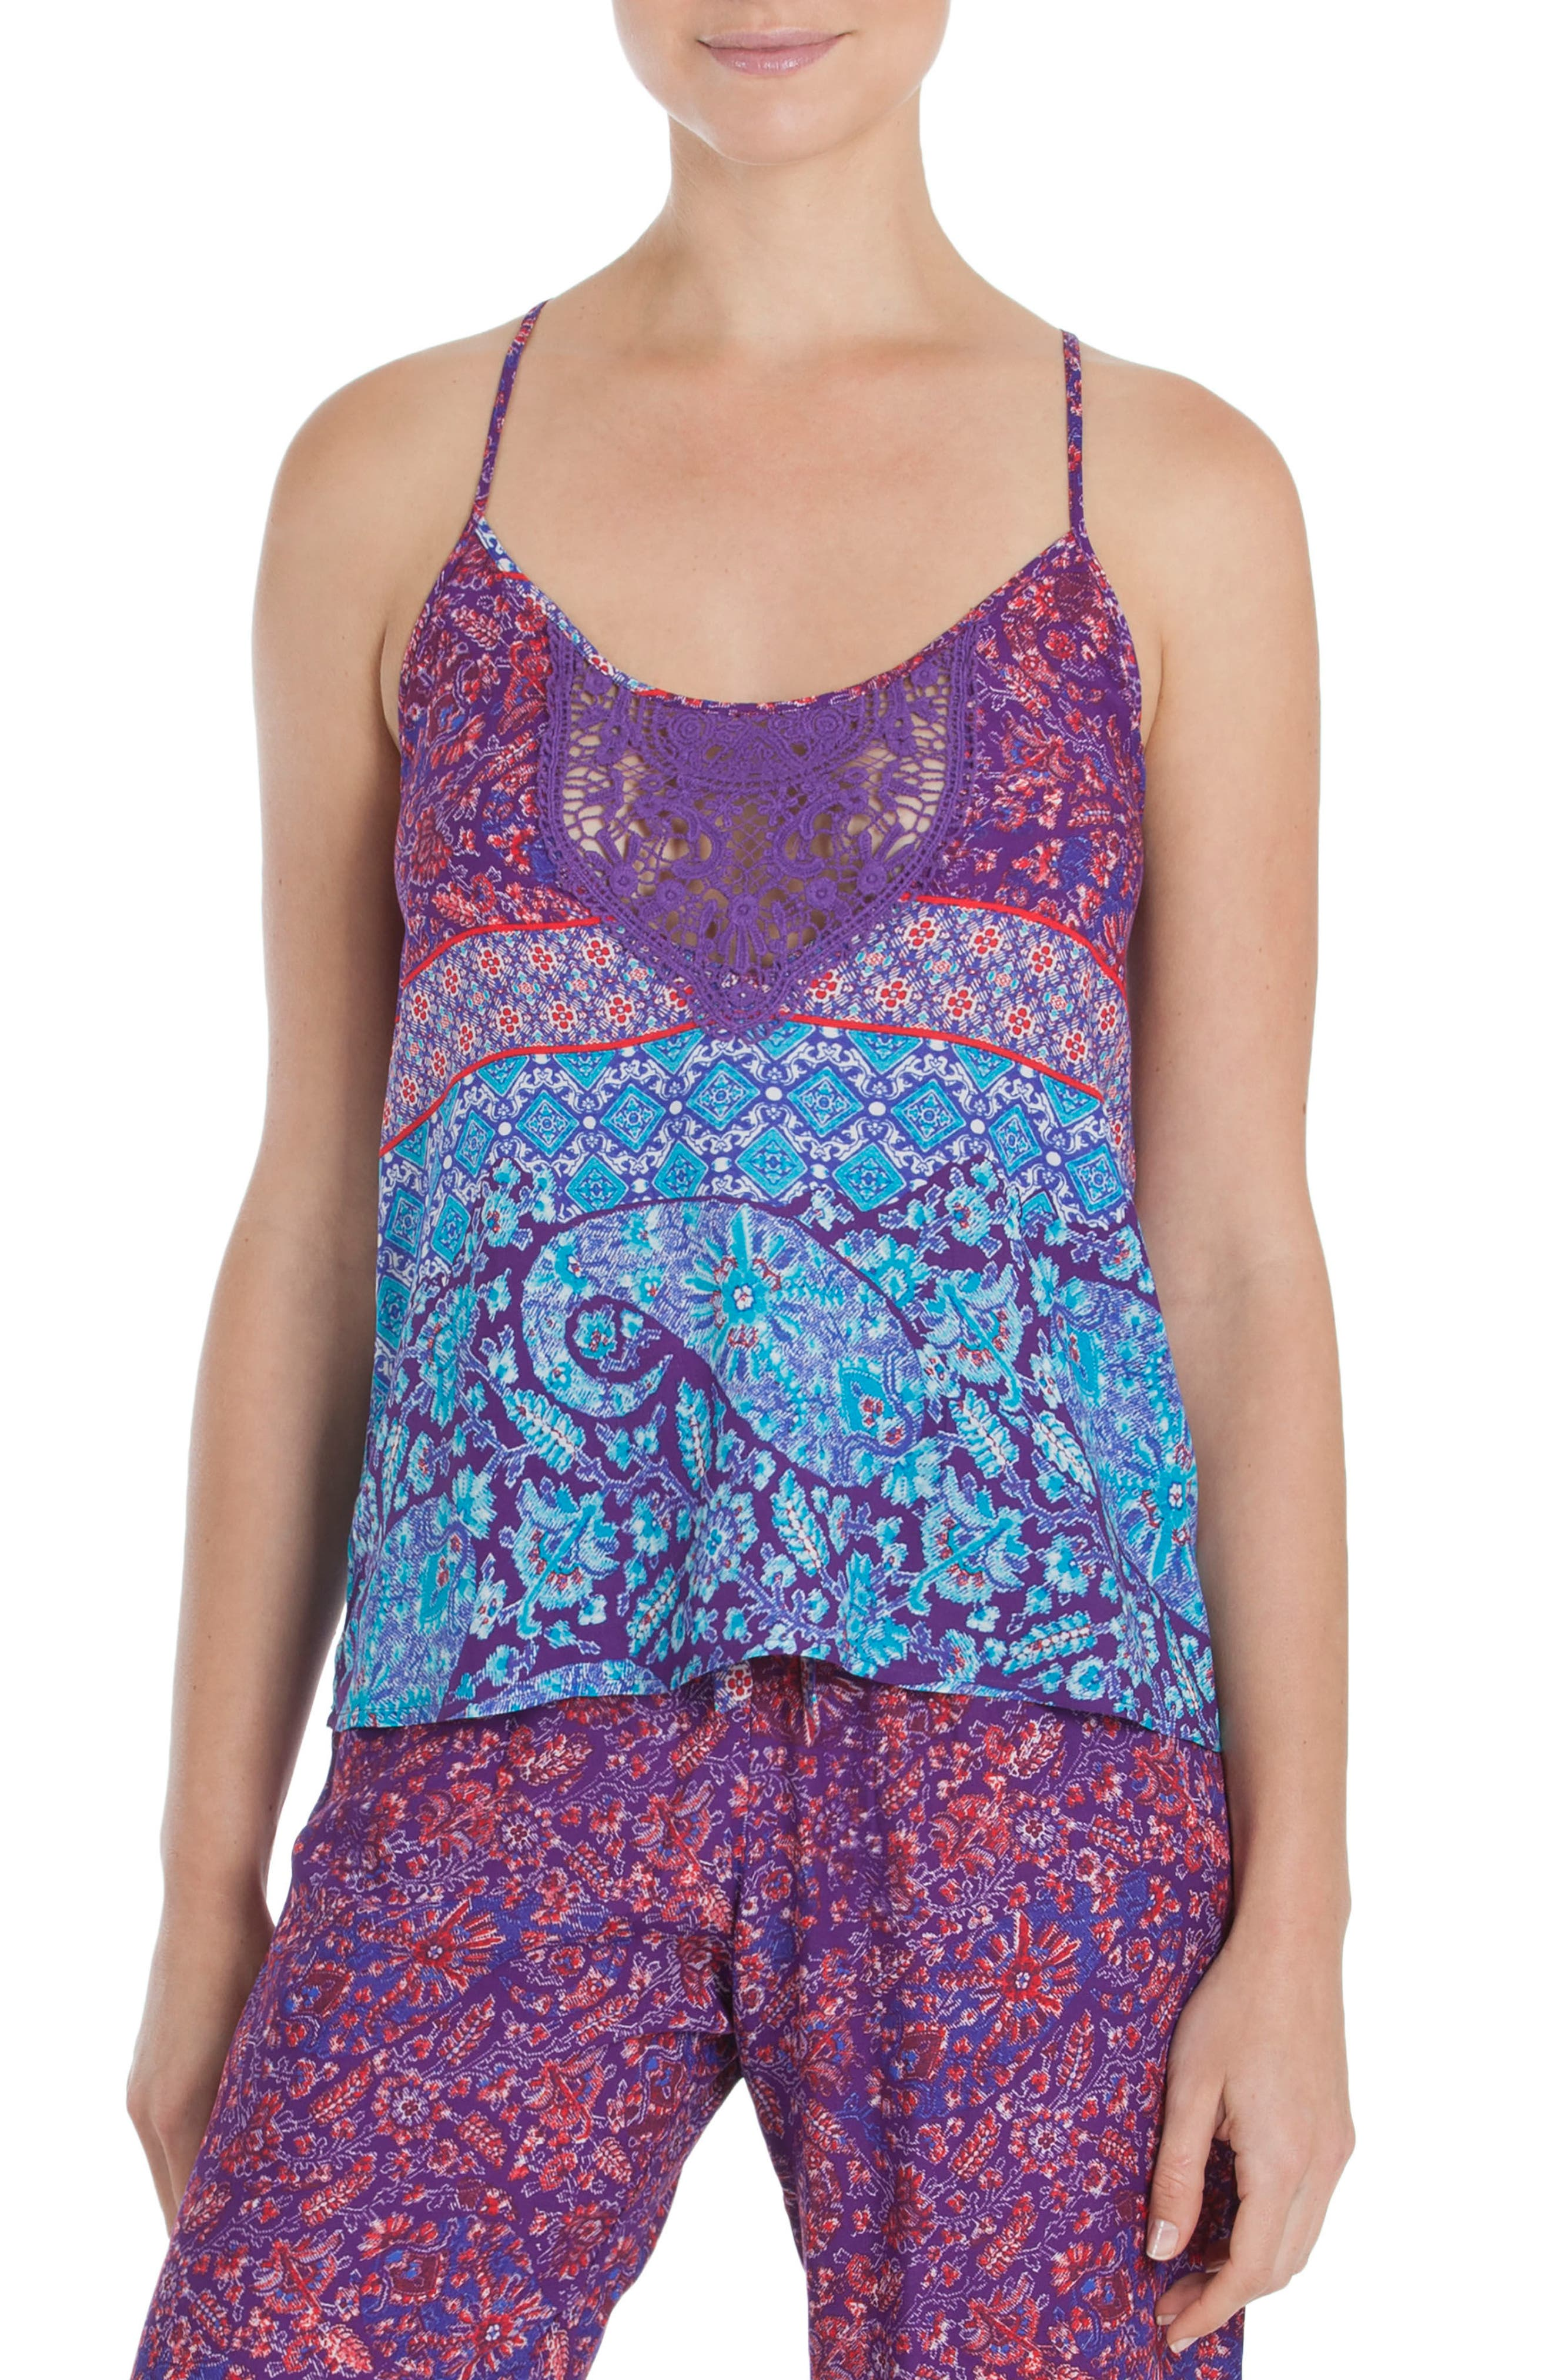 In Bloom by Jonquil Camisole